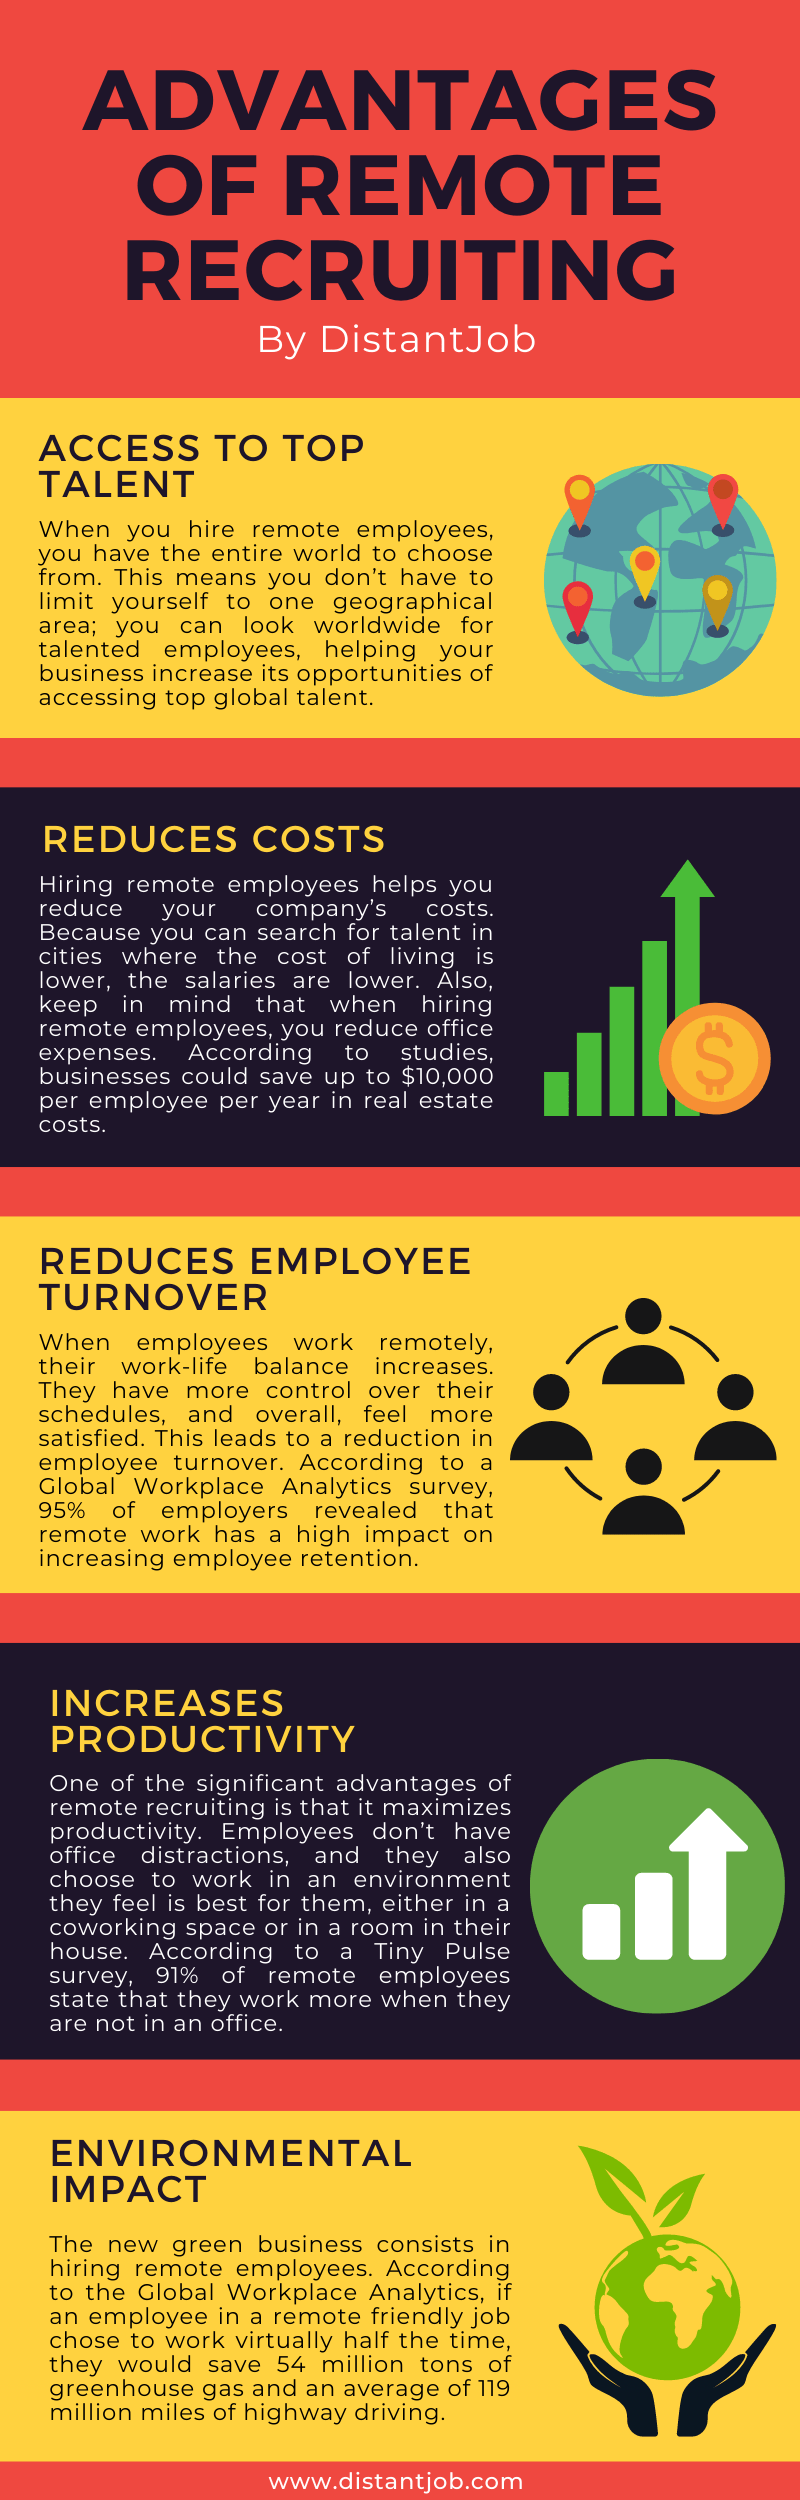 Advantages of remote recruiting